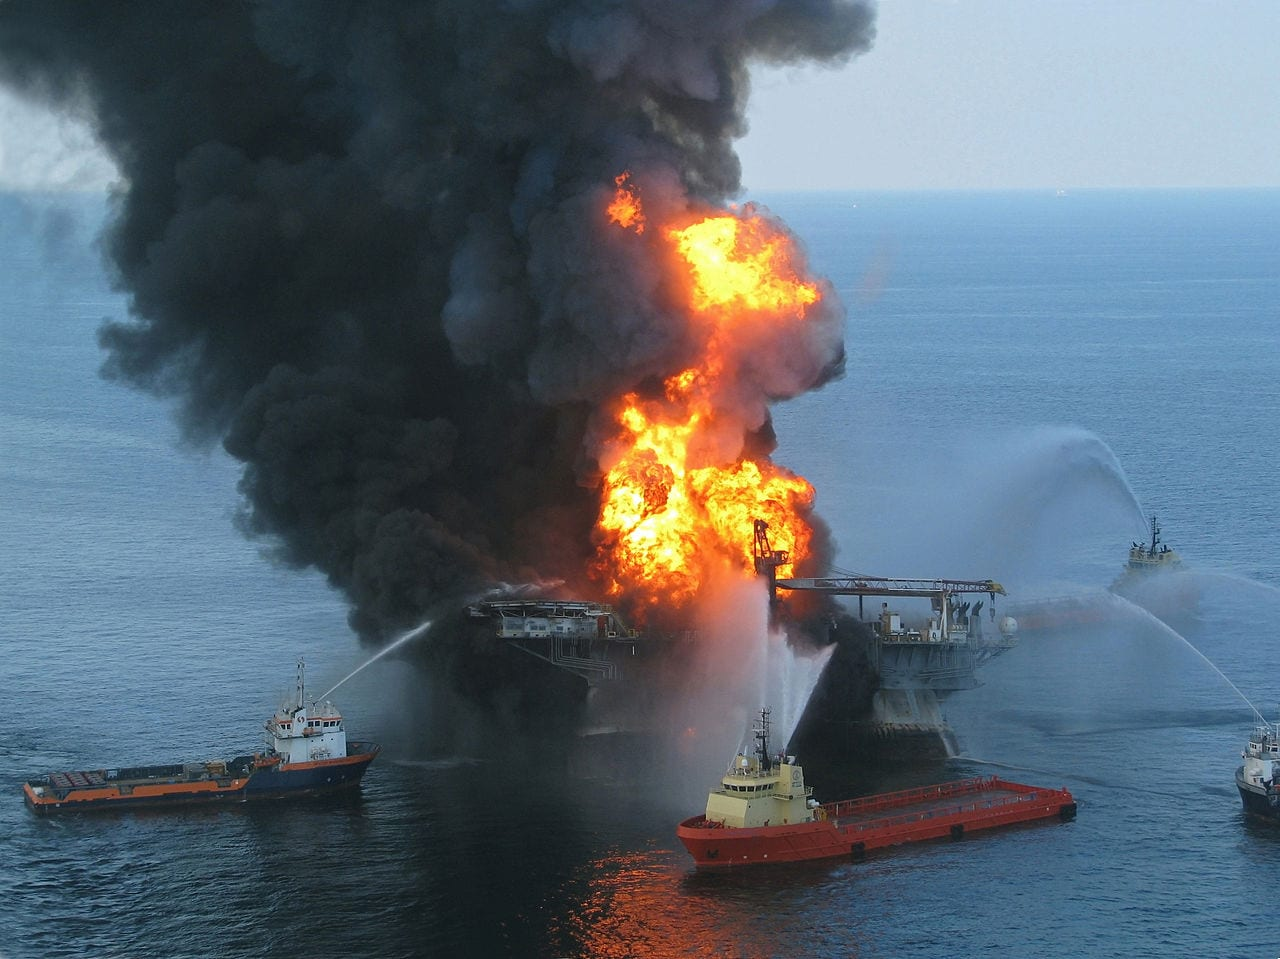 Tankers spray water on the Deepwater Horizons rig inferno.